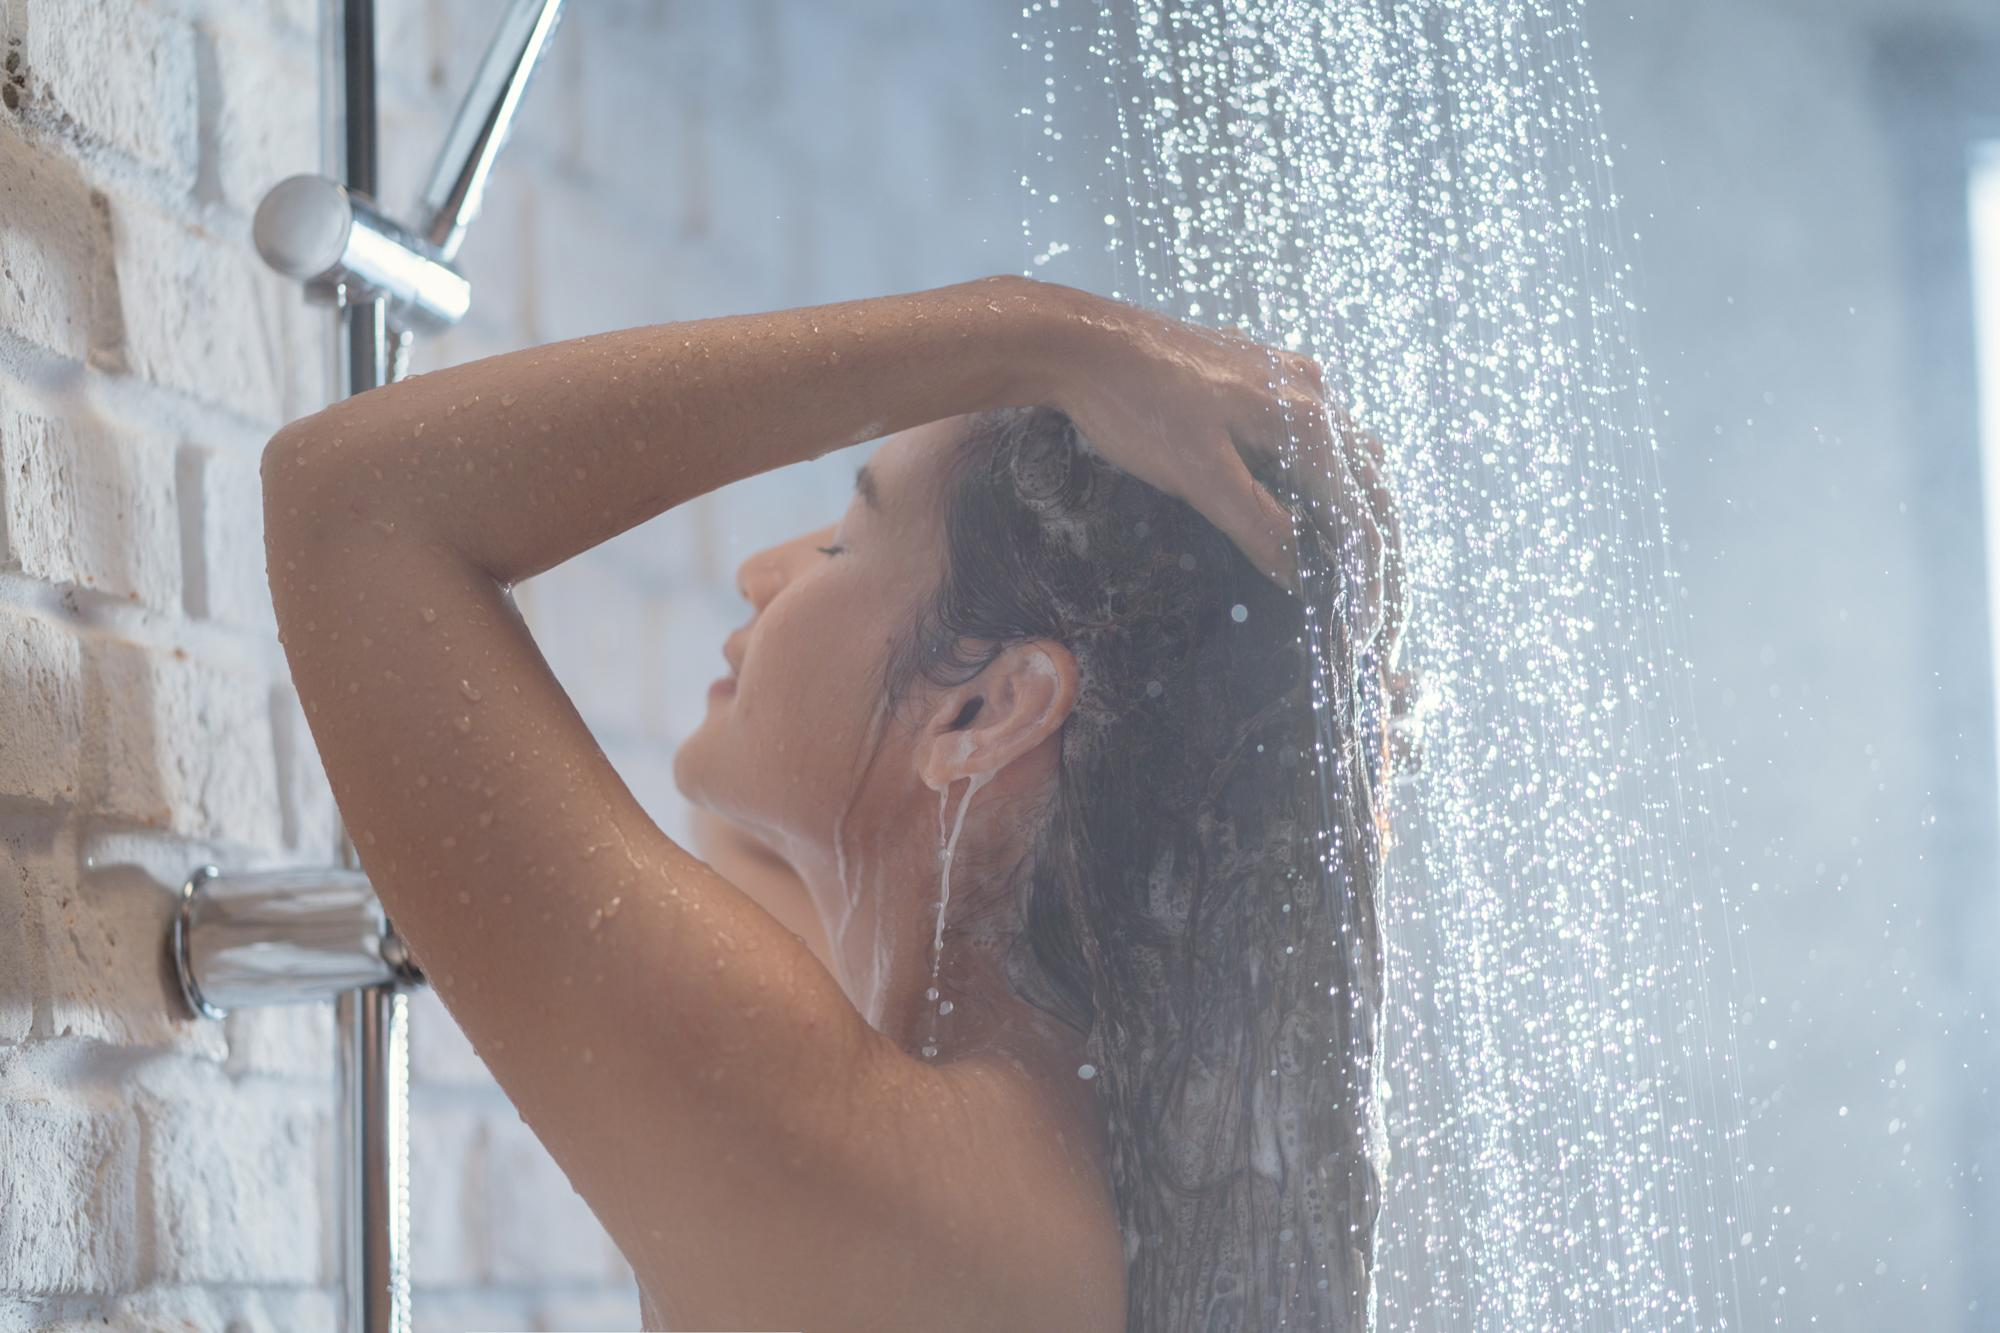 Is showering daily bad for our health?